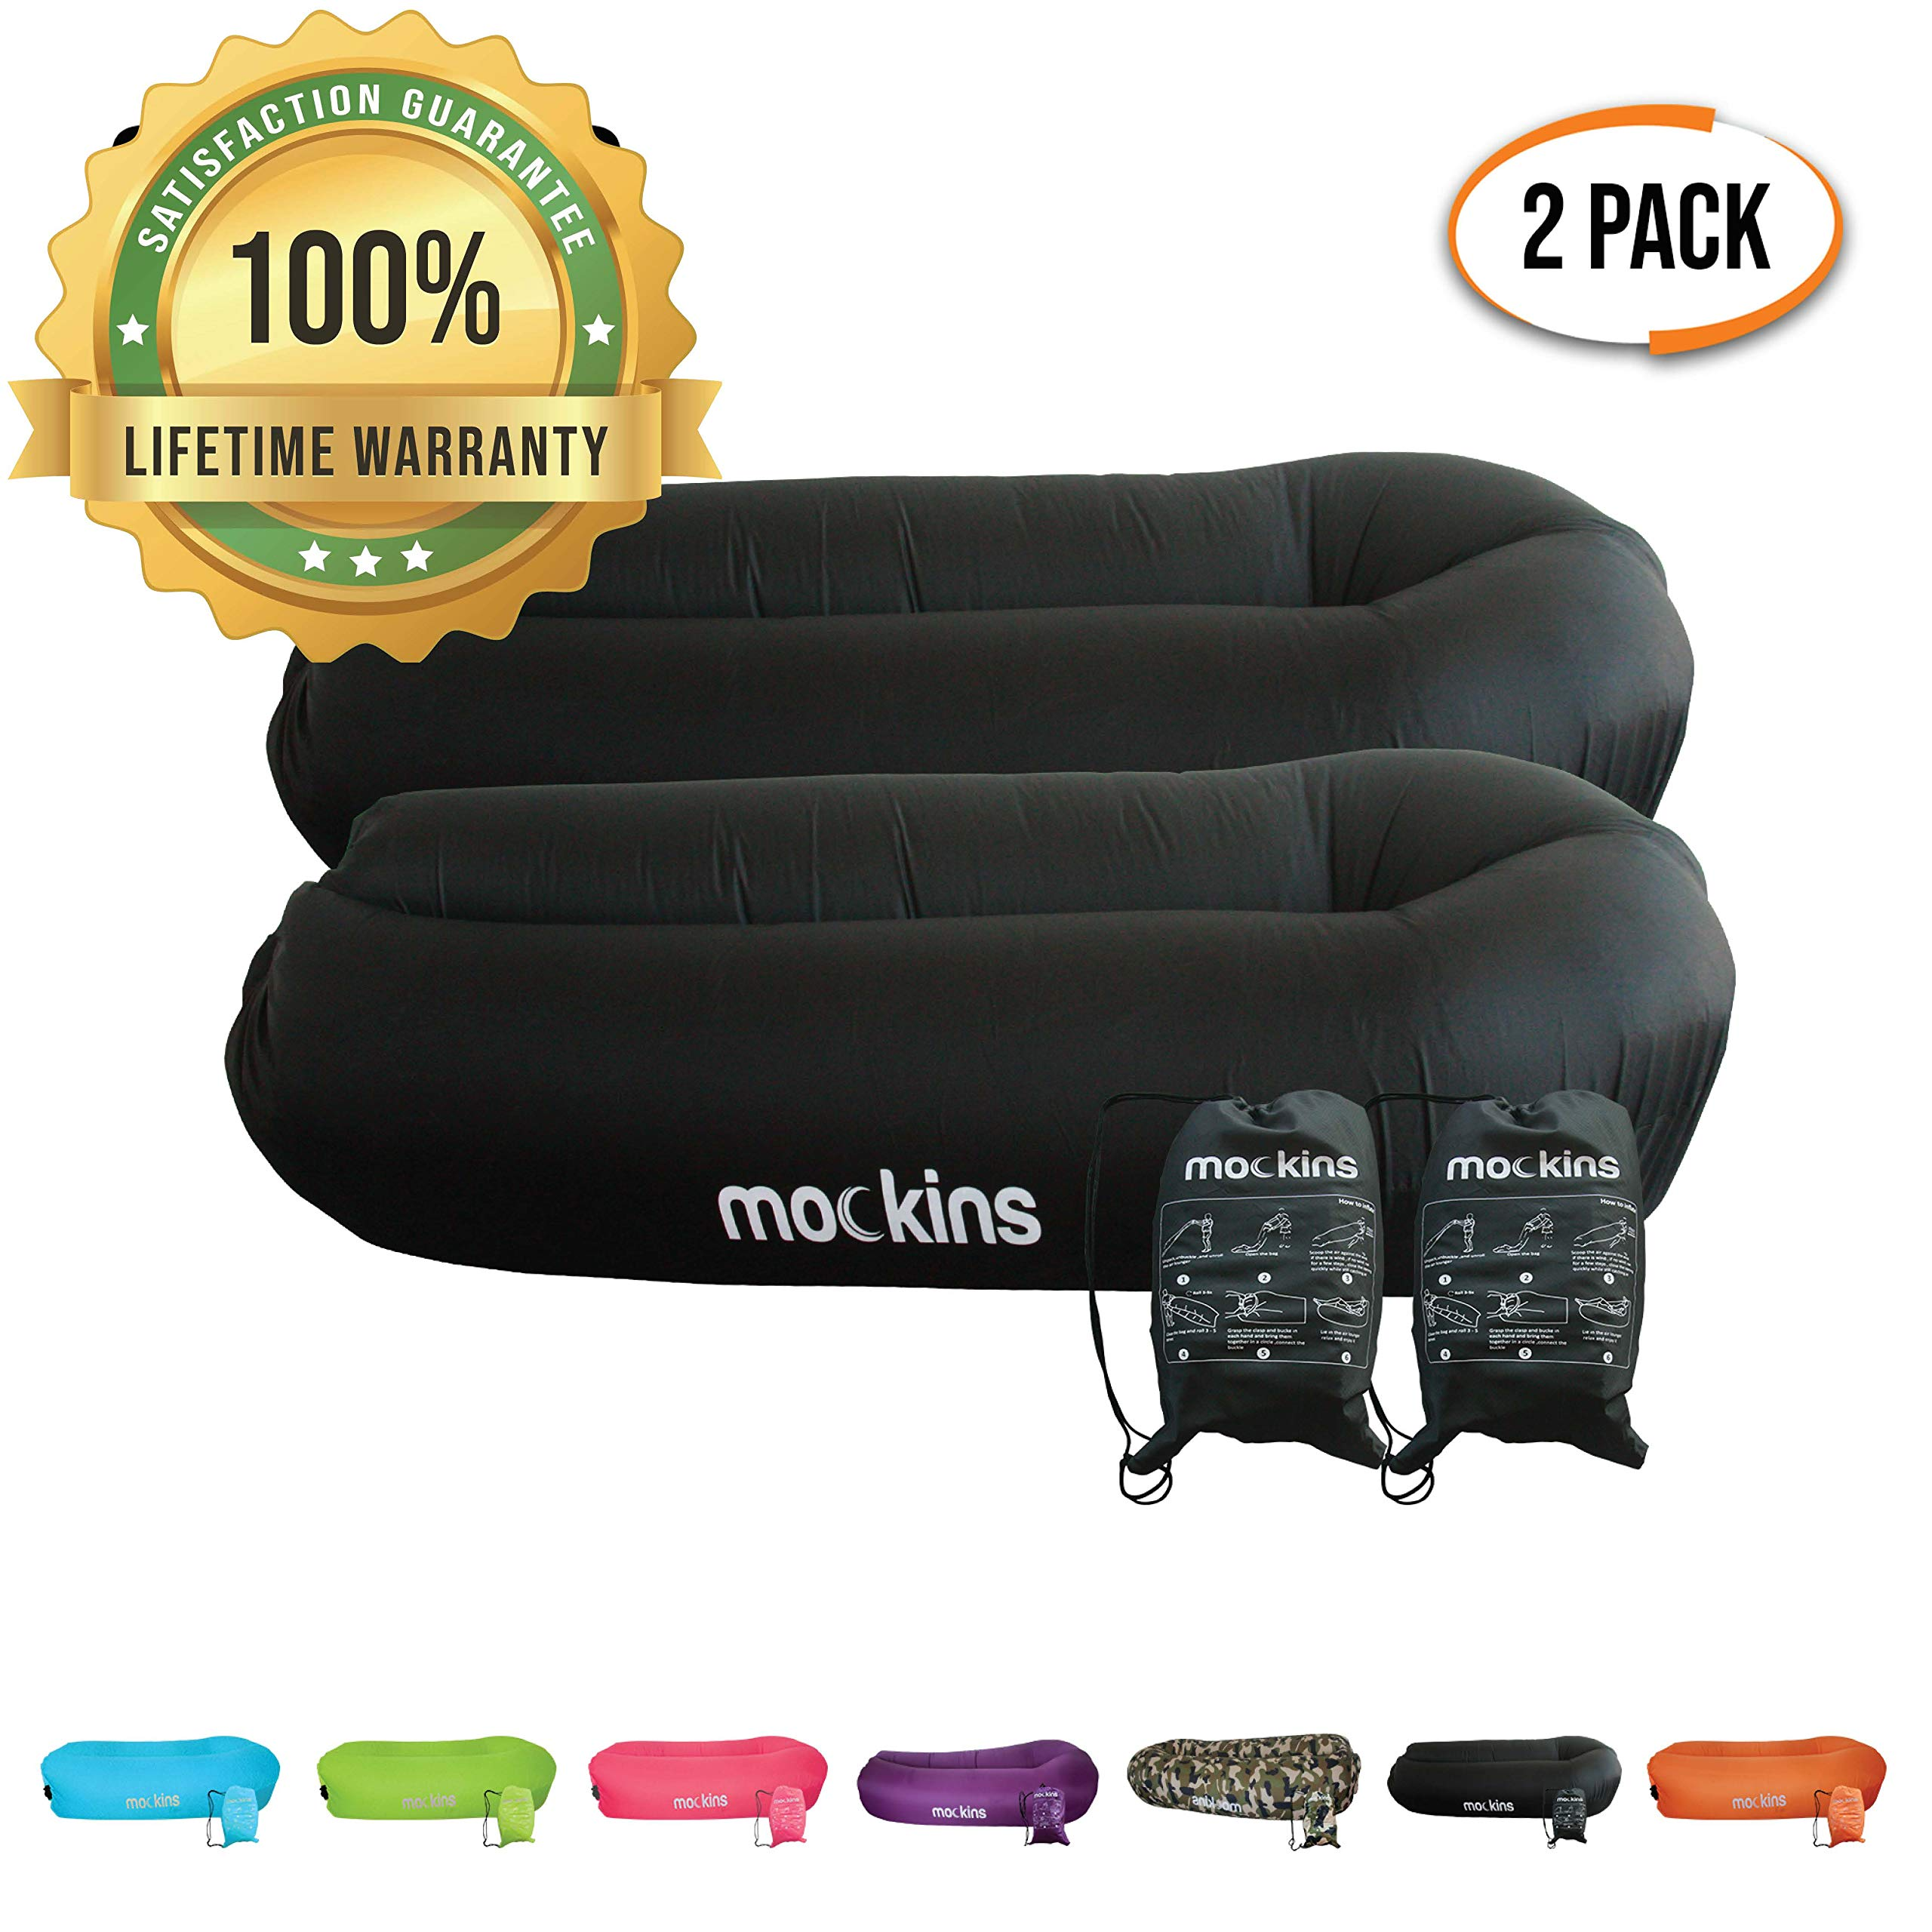 Mockins 2 Pack Black Inflatable Lounger Hangout Sofa Bed with Travel Bag Pouch The Portable Inflatable Couch Air Lounger is Perfect for Music Festivals Or Camping Accessories Inflatable Hammock by Mockins